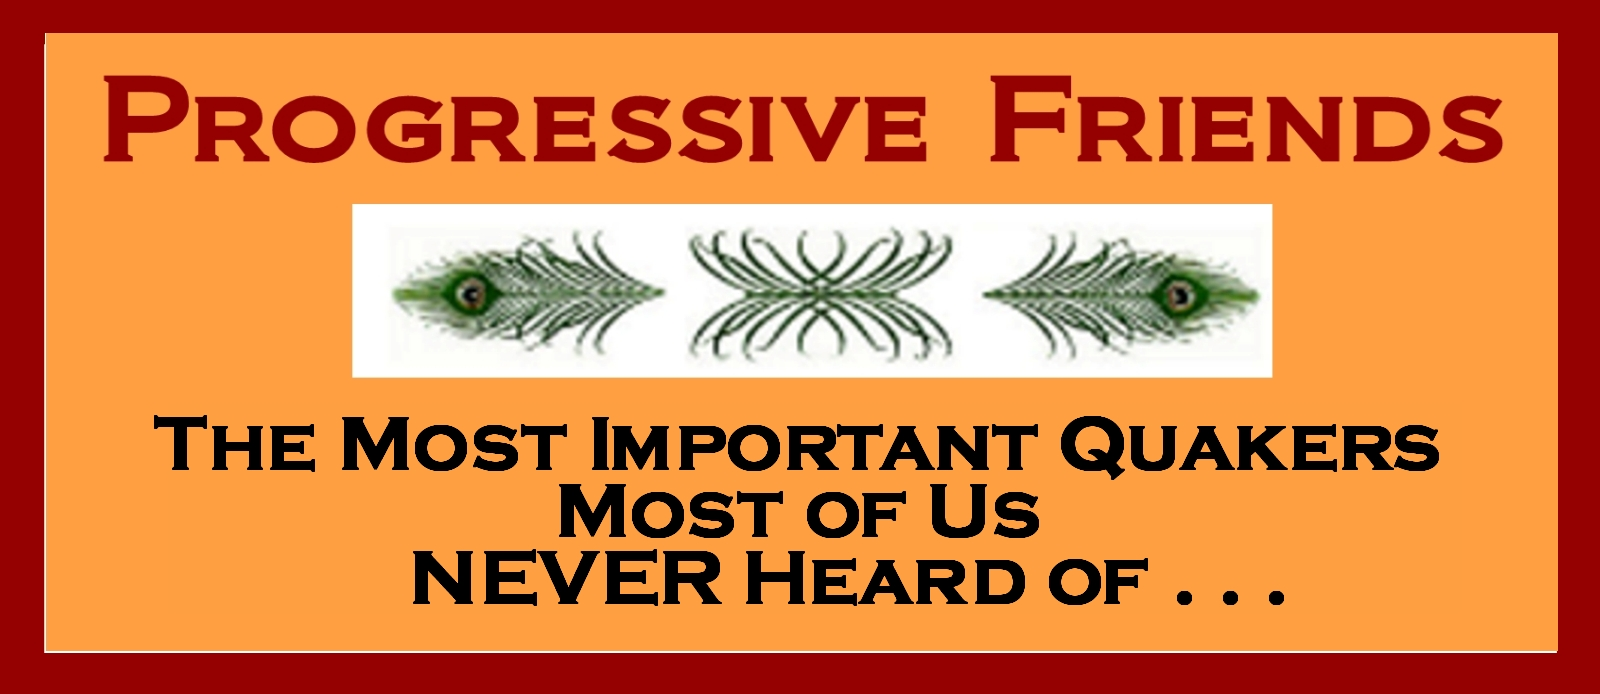 Progressive Friends - The Most Important Quakers Most Of Us Never Heard Of